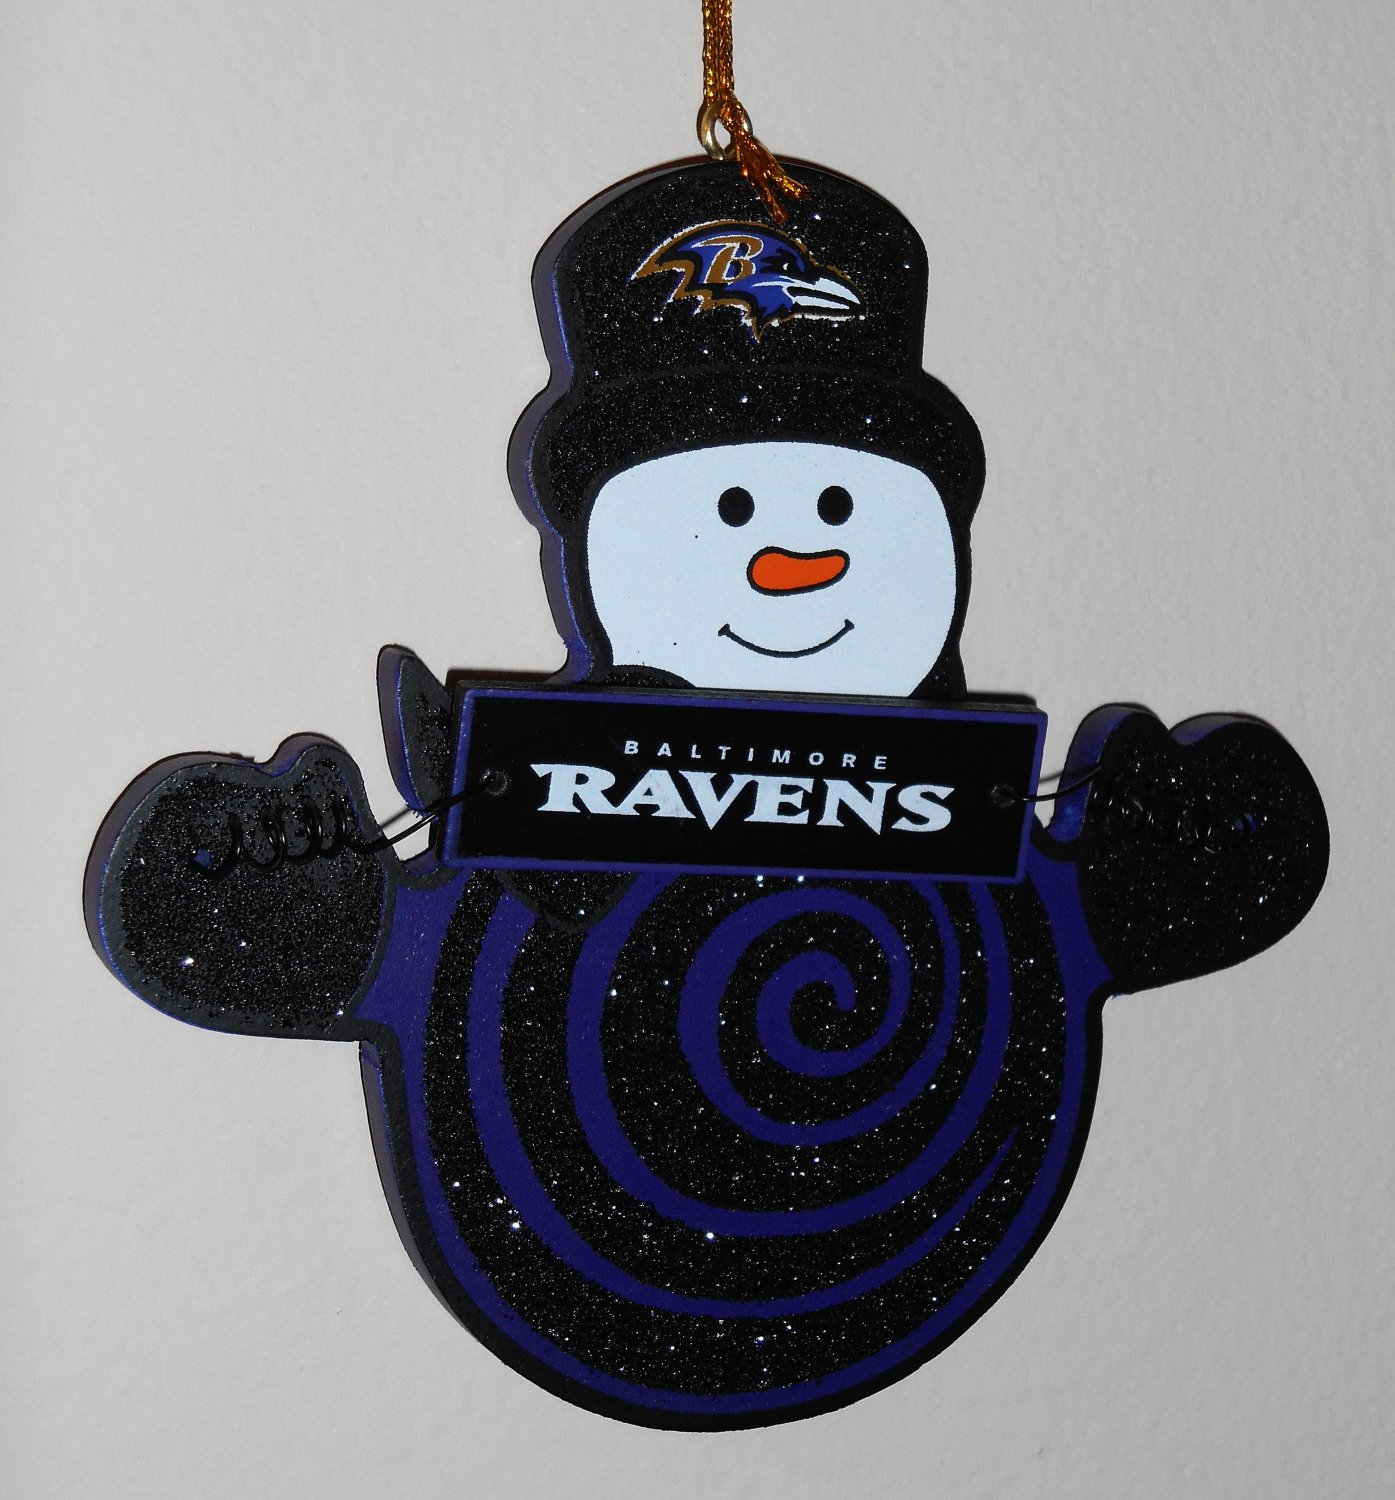 Baltimore Ravens Wooden Snowman with Sign Holiday Christmas Ornament Lot of 2 Football NFL